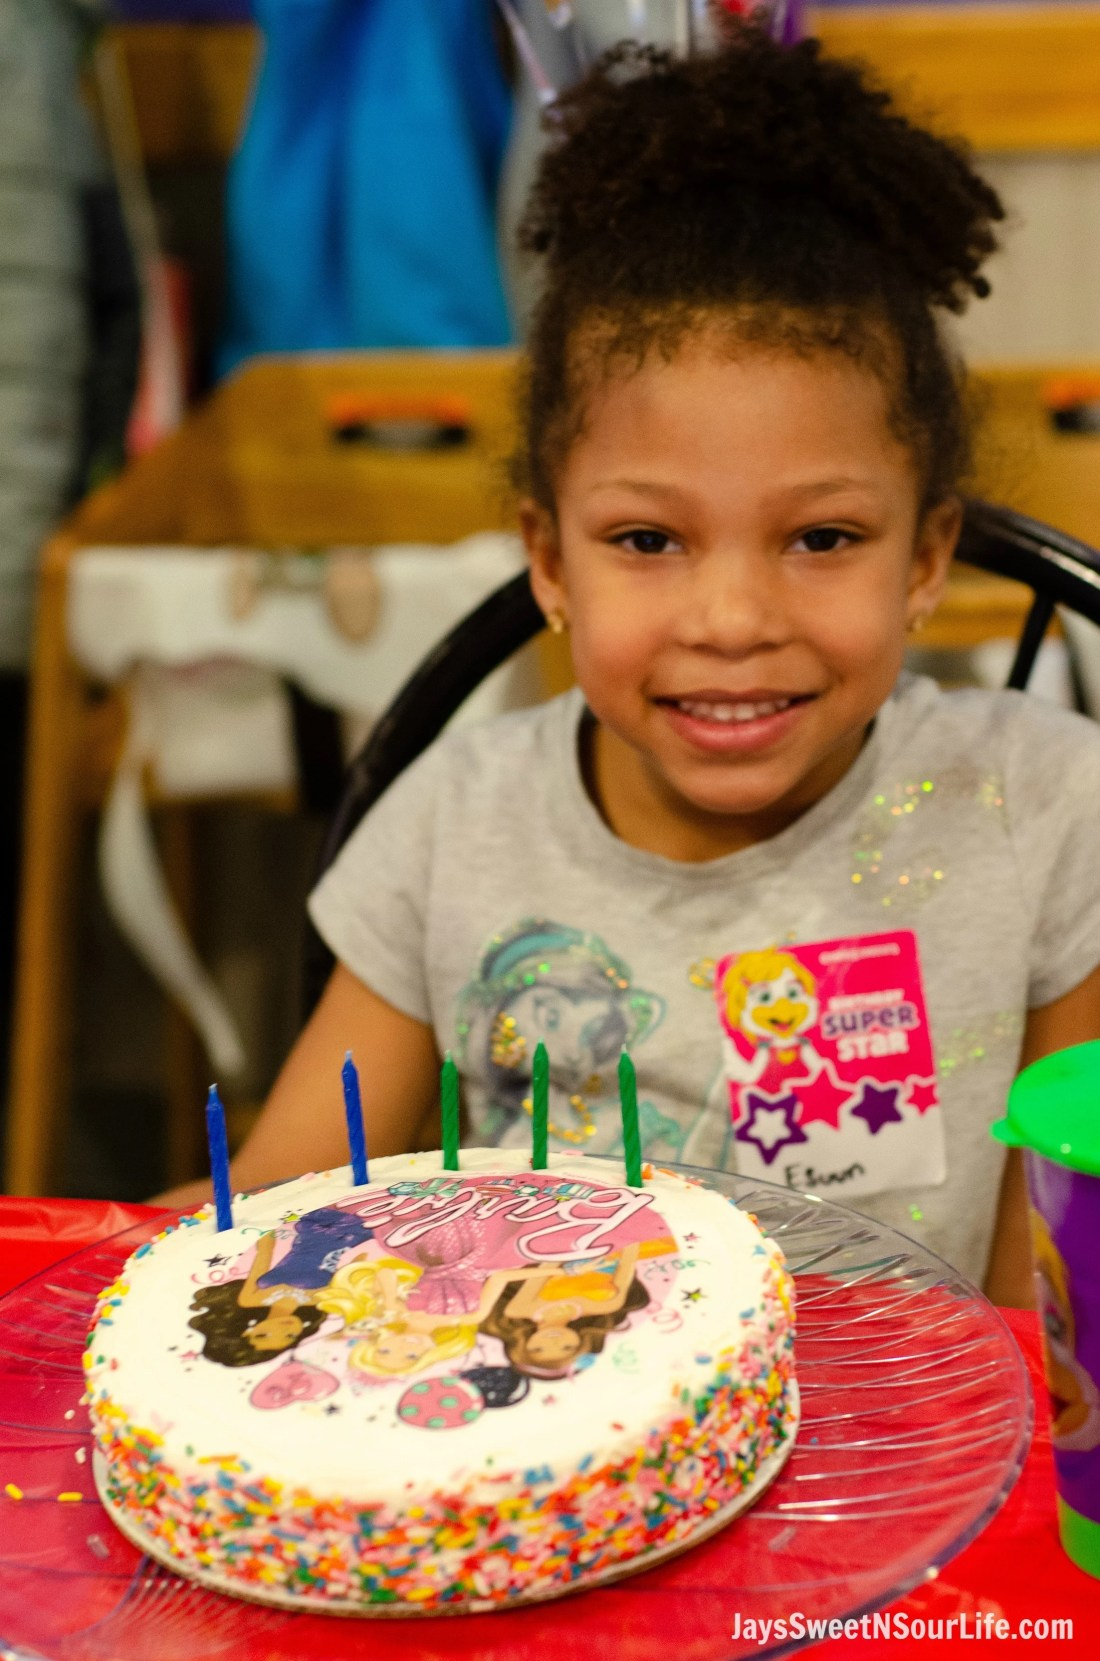 Chuck e cheeses VIP birthday Party offers new birthday cakes including one with Barbie. African American birthday girl with a Barbie BIrthday Cake.